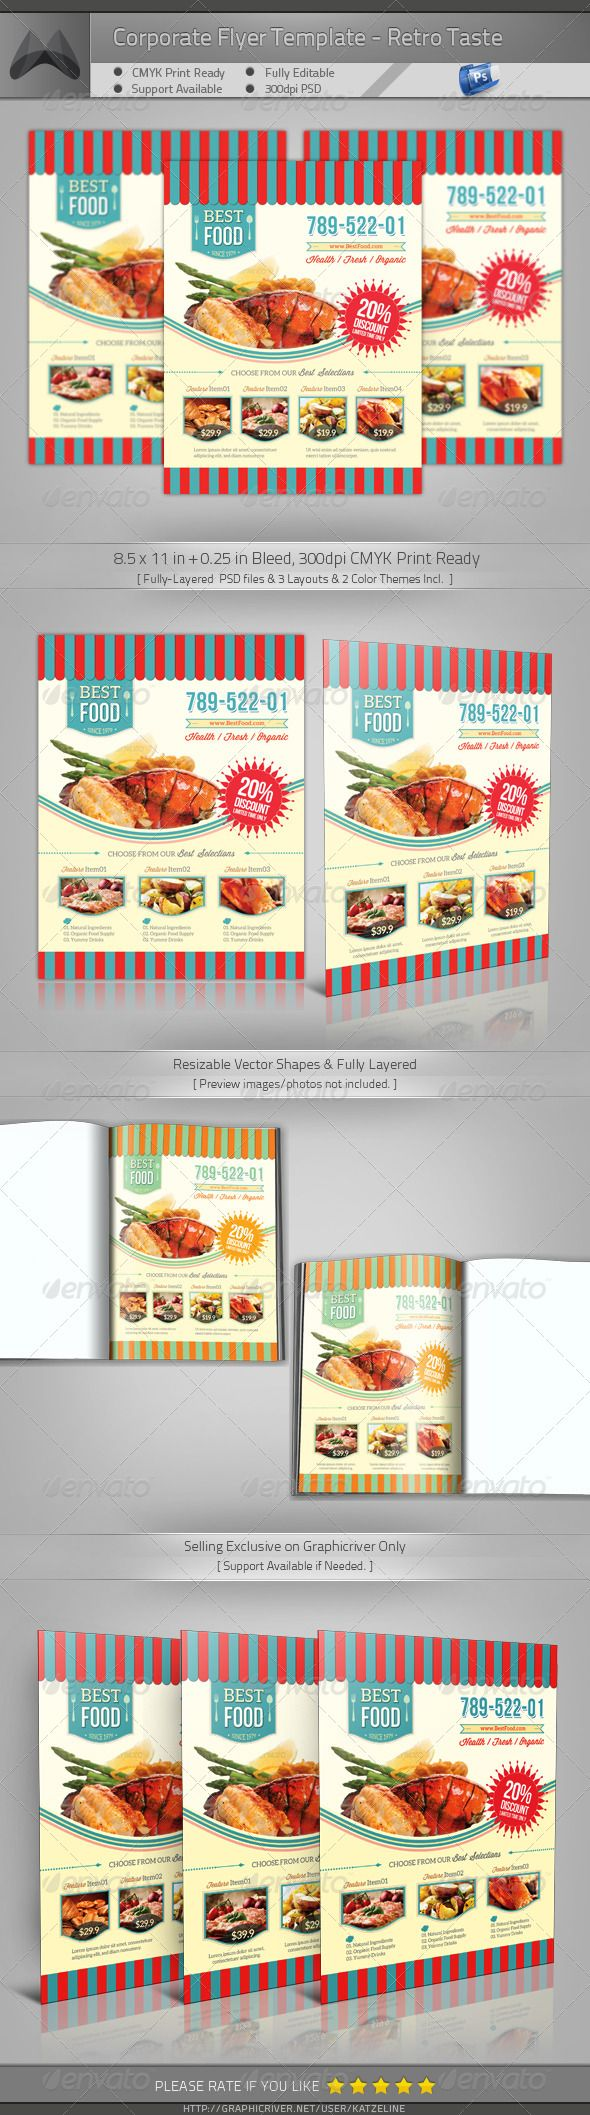 Retro Taste FoodRestaurant Flyer  Taste Food Flyer Template And